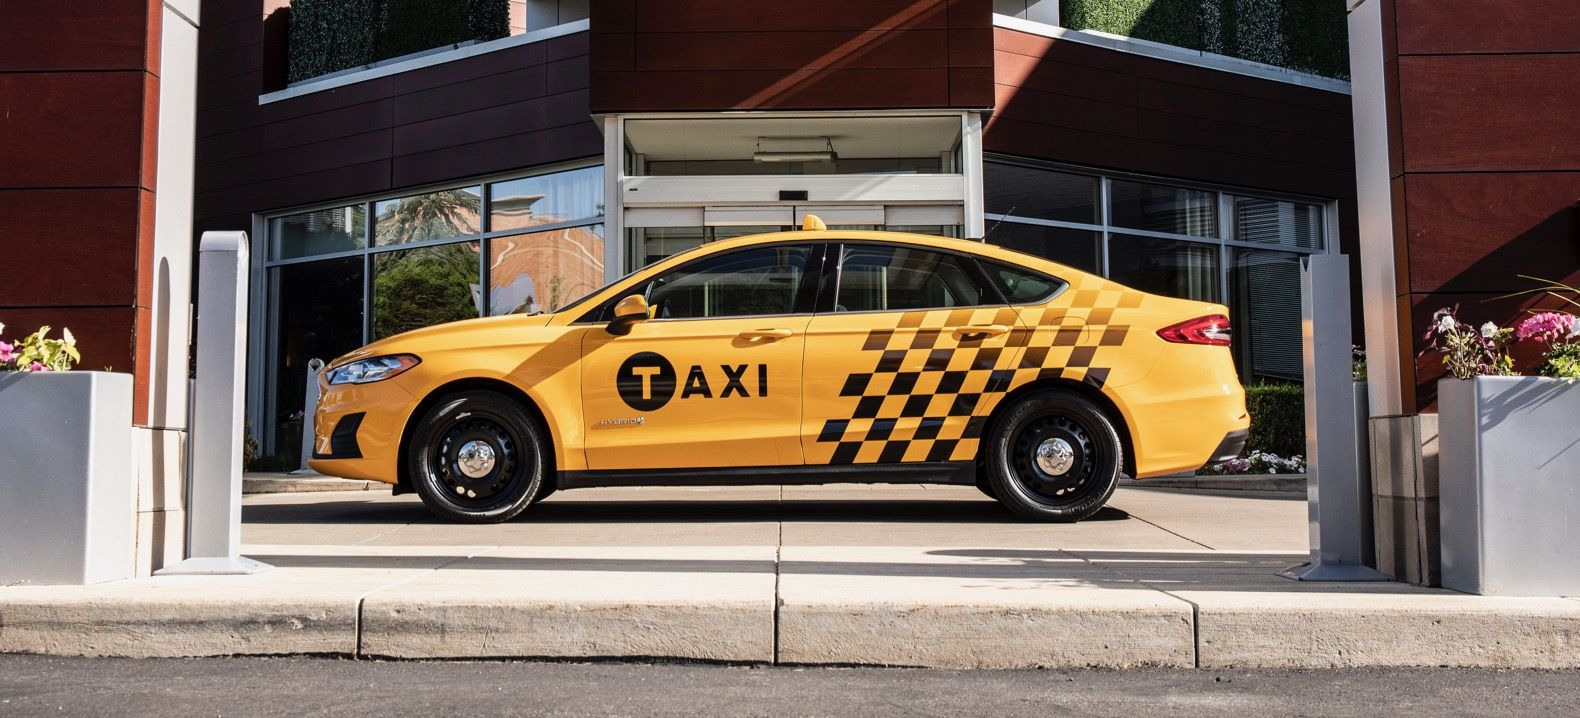 Ford Introduces New Hybrid And Diesel Taxis Http Www Autotribute Com 48685 Ford Introduces New Hybrid And Diesel Taxis Newyo Taxi Ford Super Cars